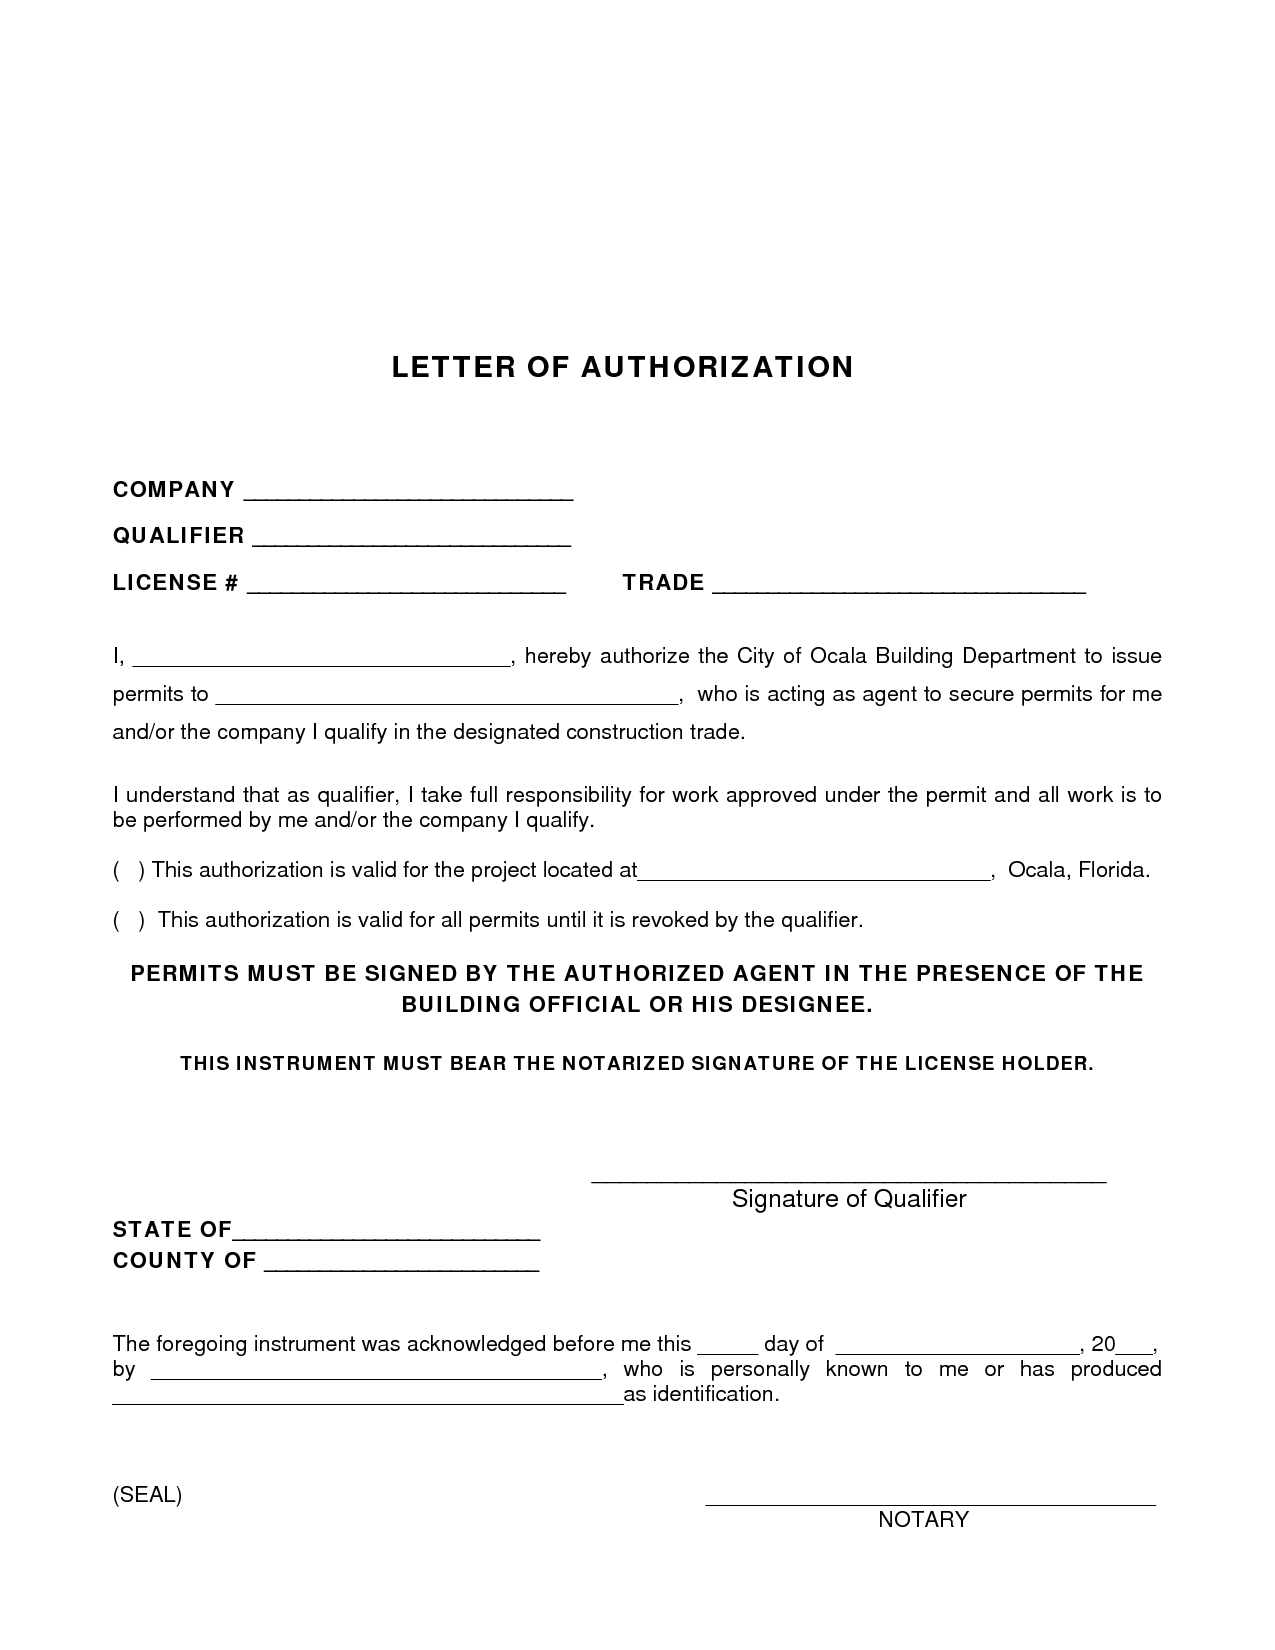 Parental consent to travel form template new sample domestic travel to travel form template new sample domestic travel parental consent to travel form template new sample domestic travel consent form consent letter for thecheapjerseys Image collections